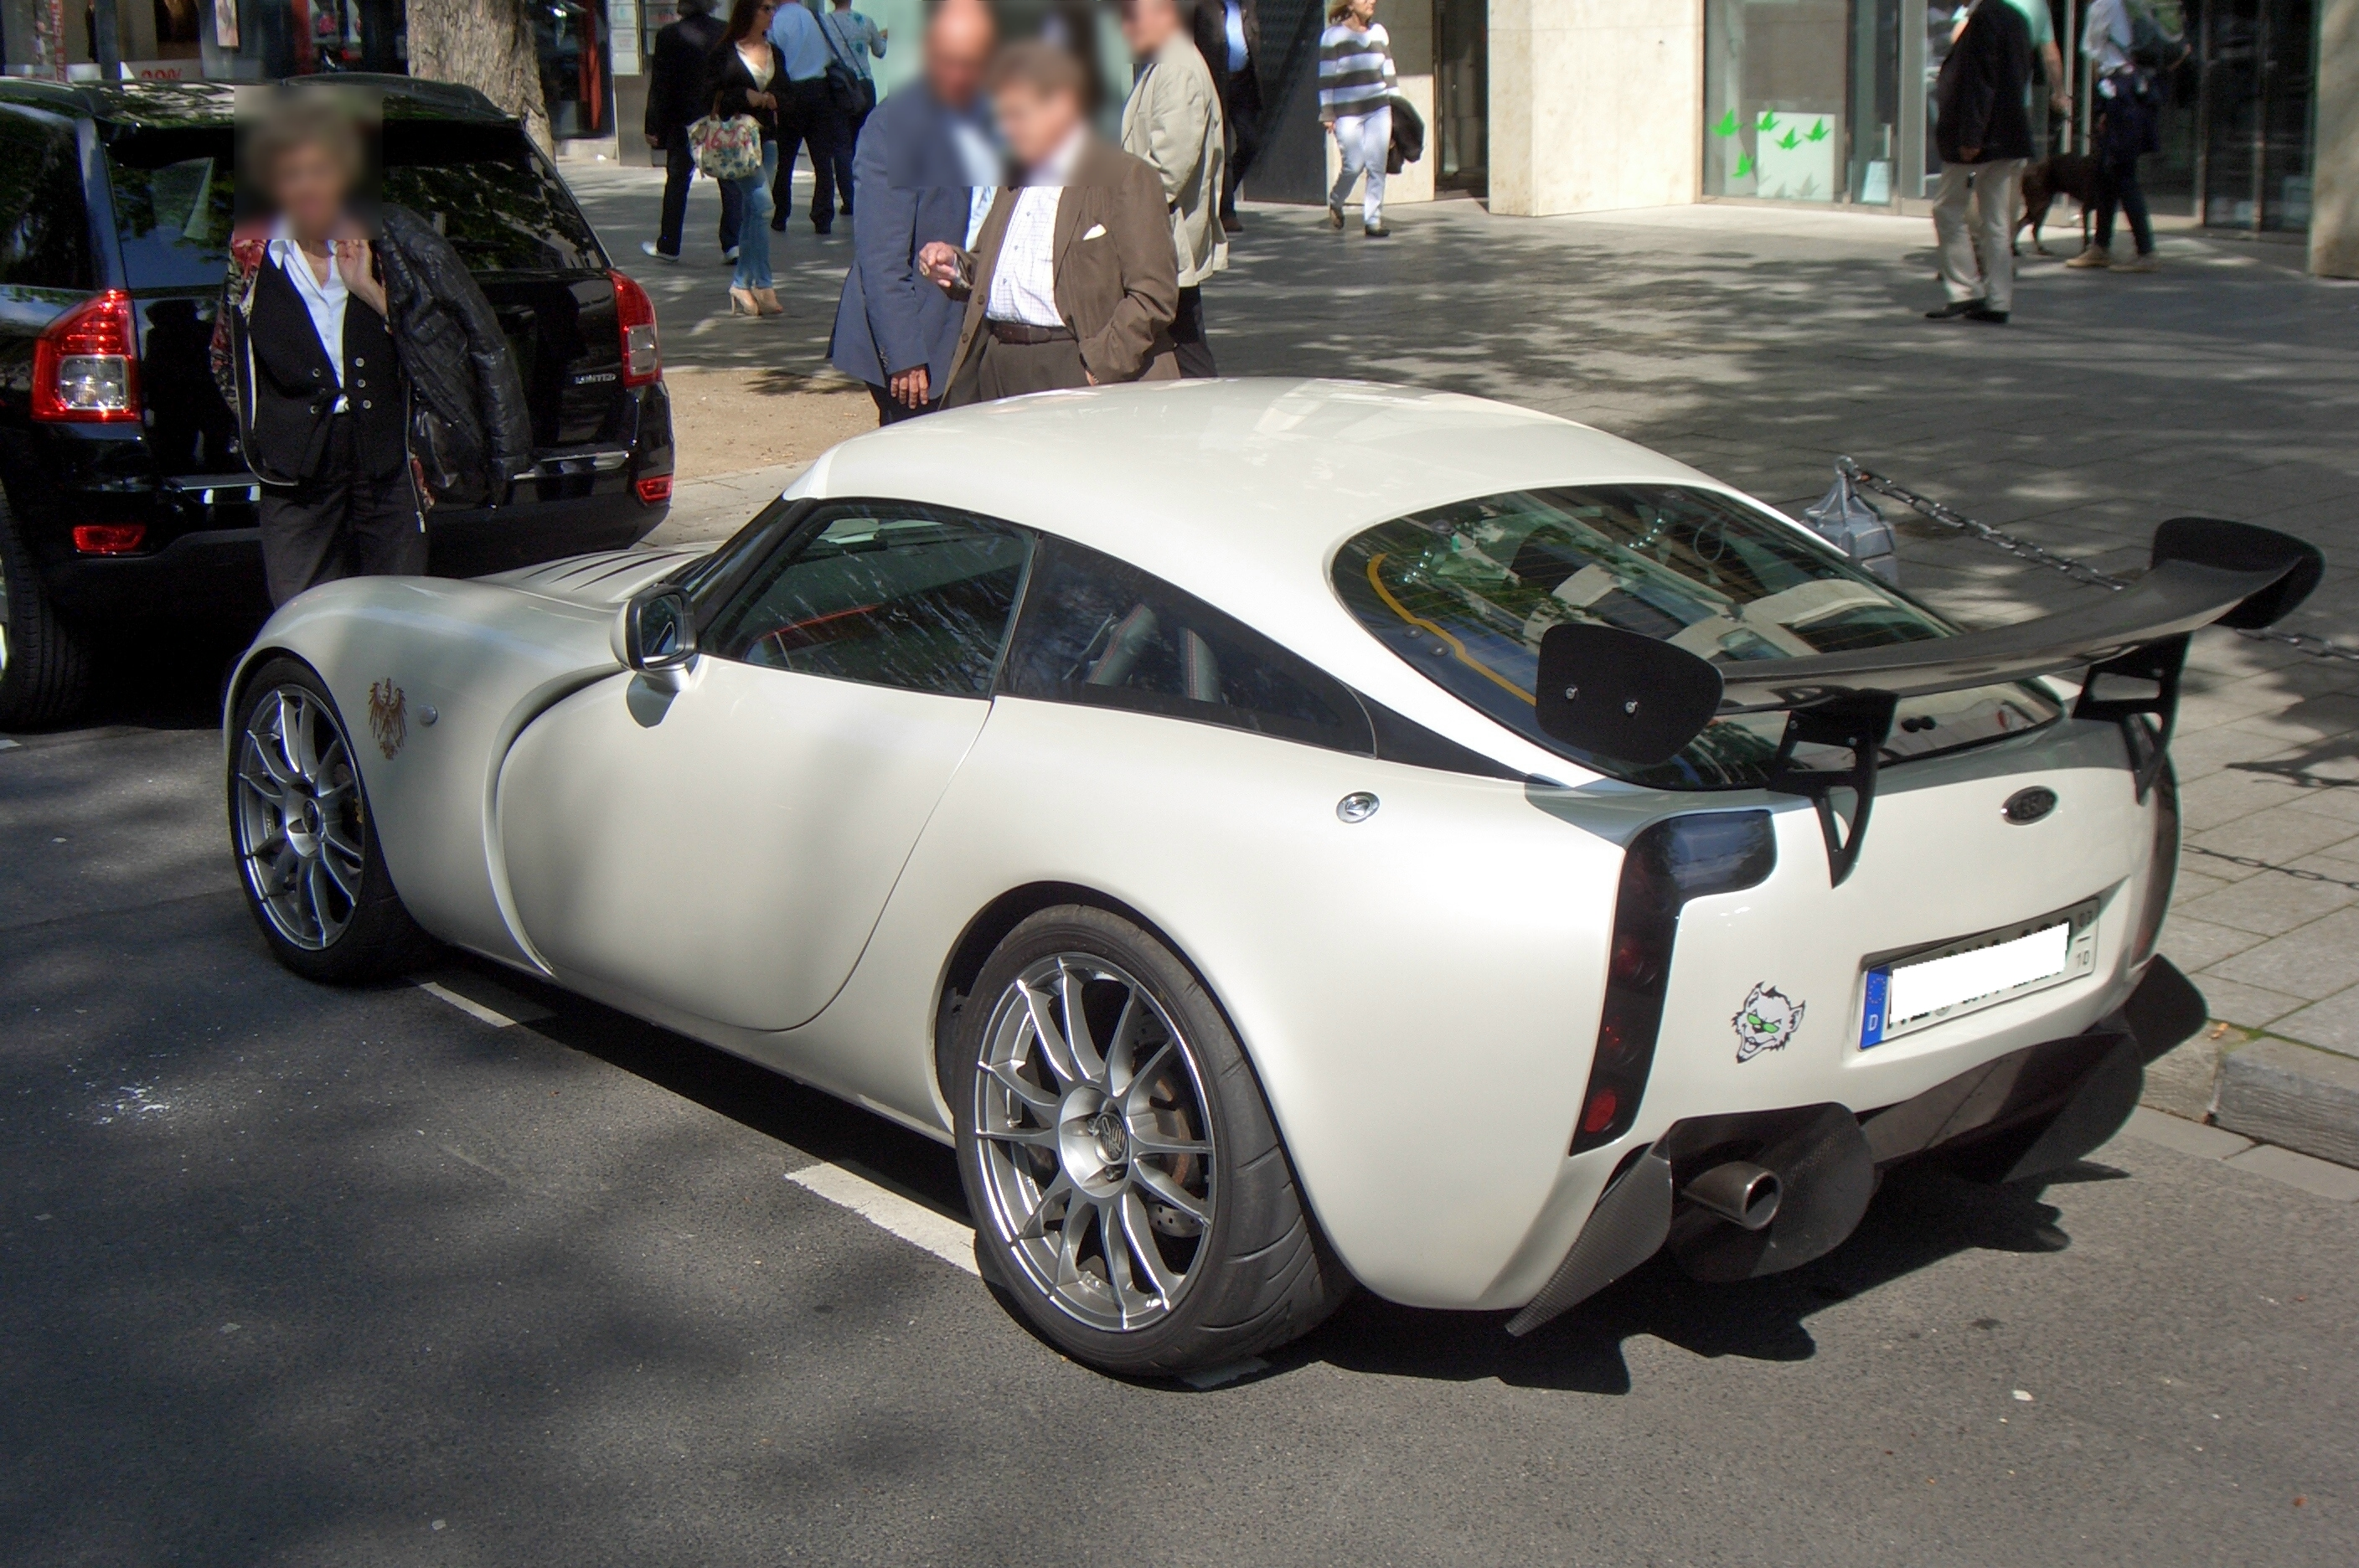 tvr 350 images